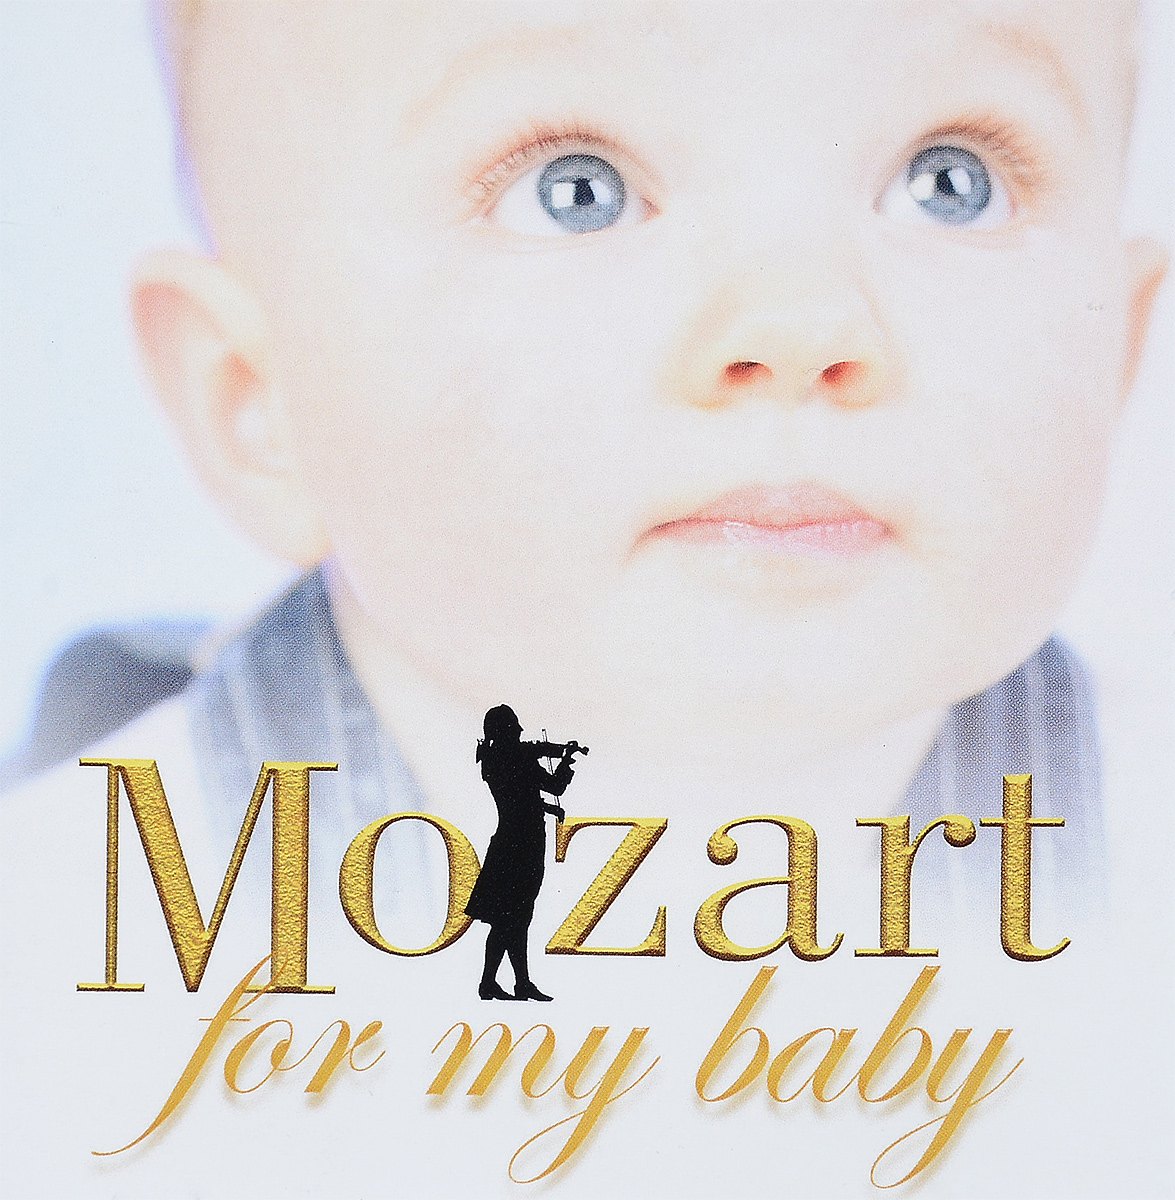 VARIOUS ARTISTS. MOZART FOR MY BABY tina leonard my baby my bride